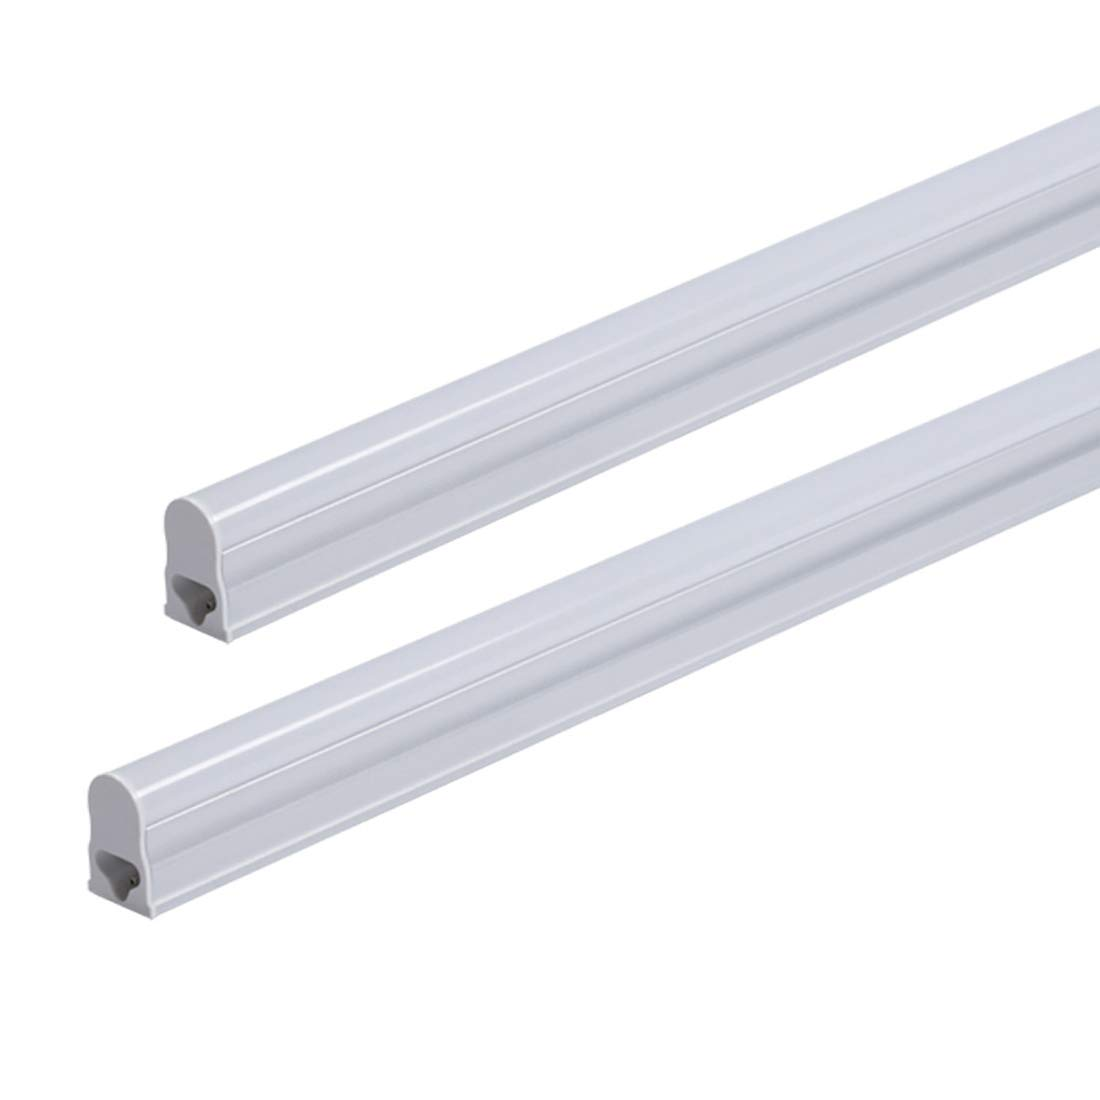 Led me t5 led integrated tube ultra slim high output light fitting kitchen under cabinet 5w 3200k warm white 30cm 300mm 1 energy saving replacement